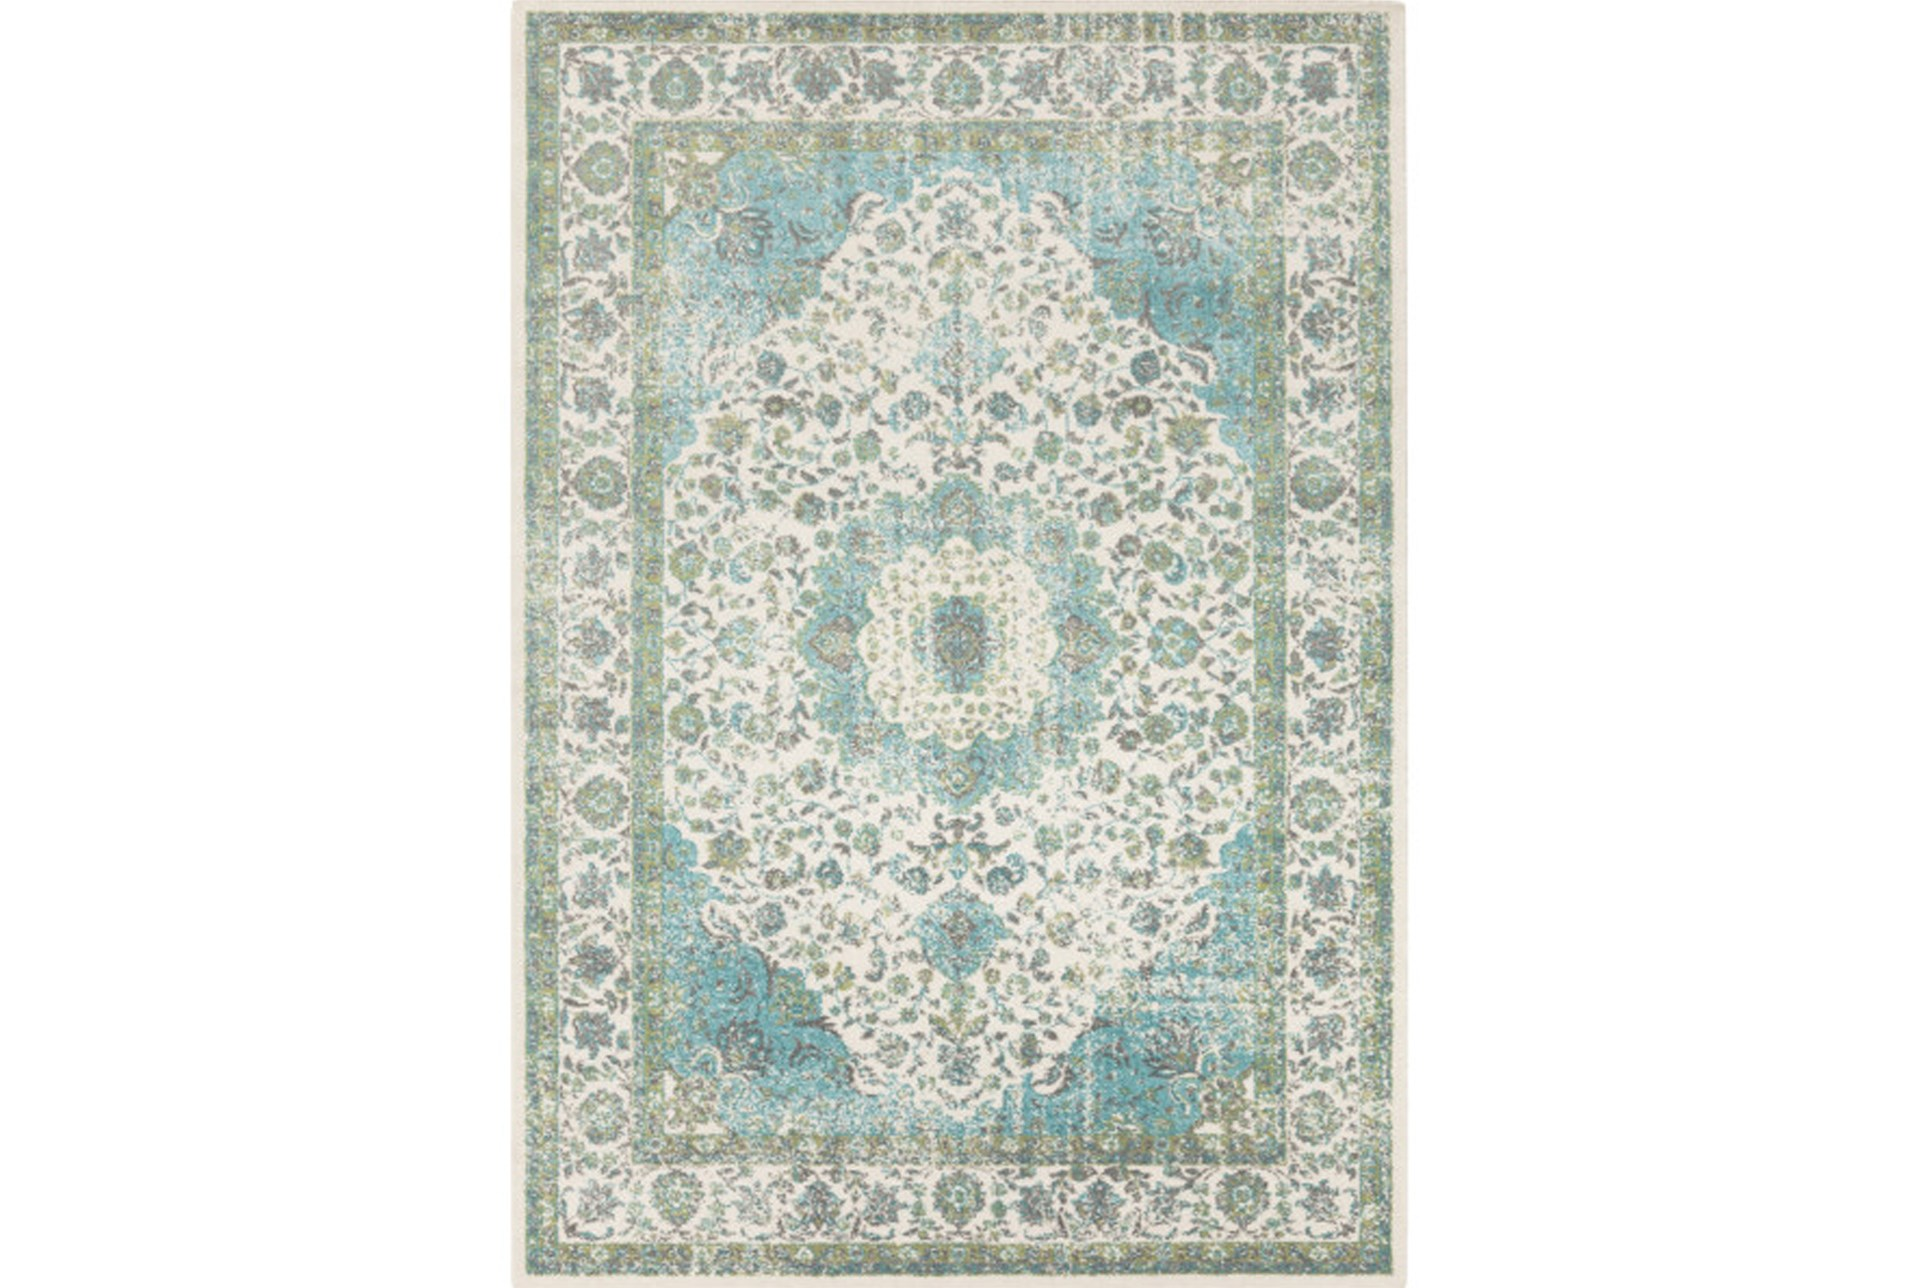 62x90 Rug Ketton Clic Teal Lime Qty 1 Has Been Successfully Added To Your Cart